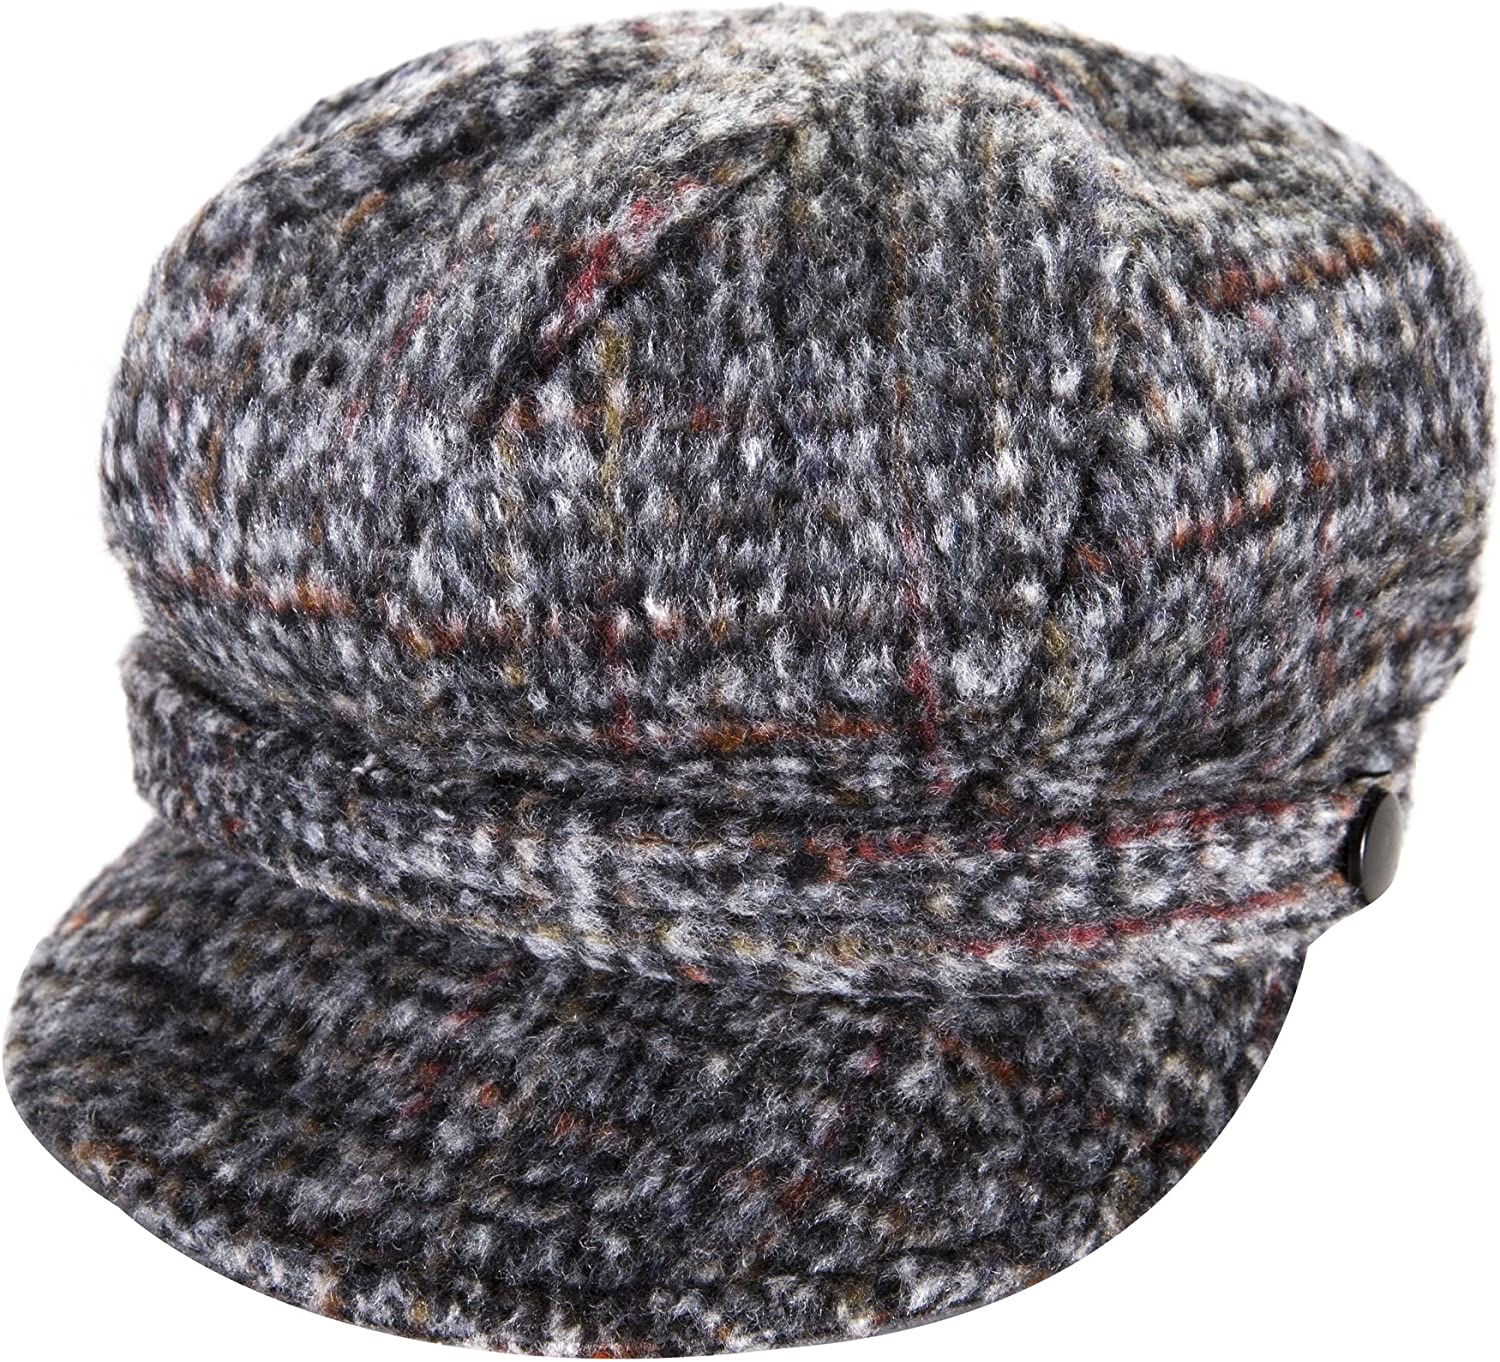 Heritage Traditions Womens Tweed Wool Hat Peaked Cap Bombing Quantity limited free shipping Gr Newsboy